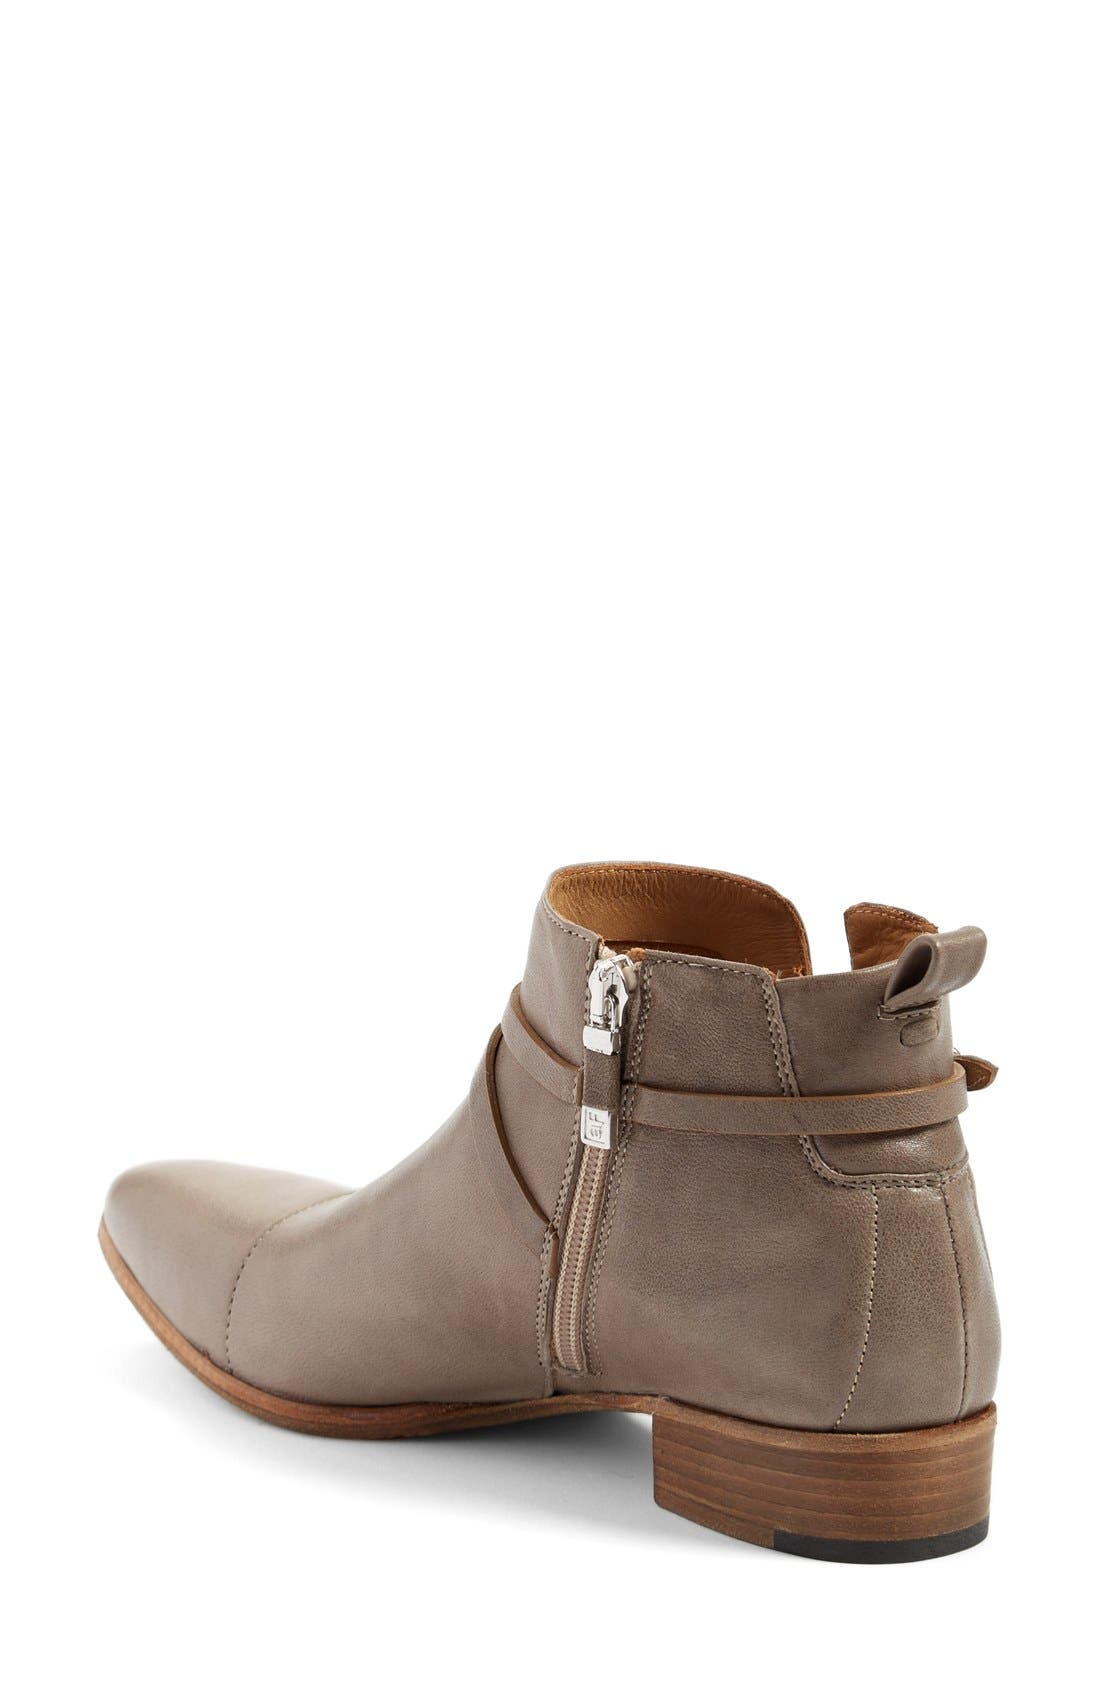 'Mea' Ankle Boot,                             Alternate thumbnail 9, color,